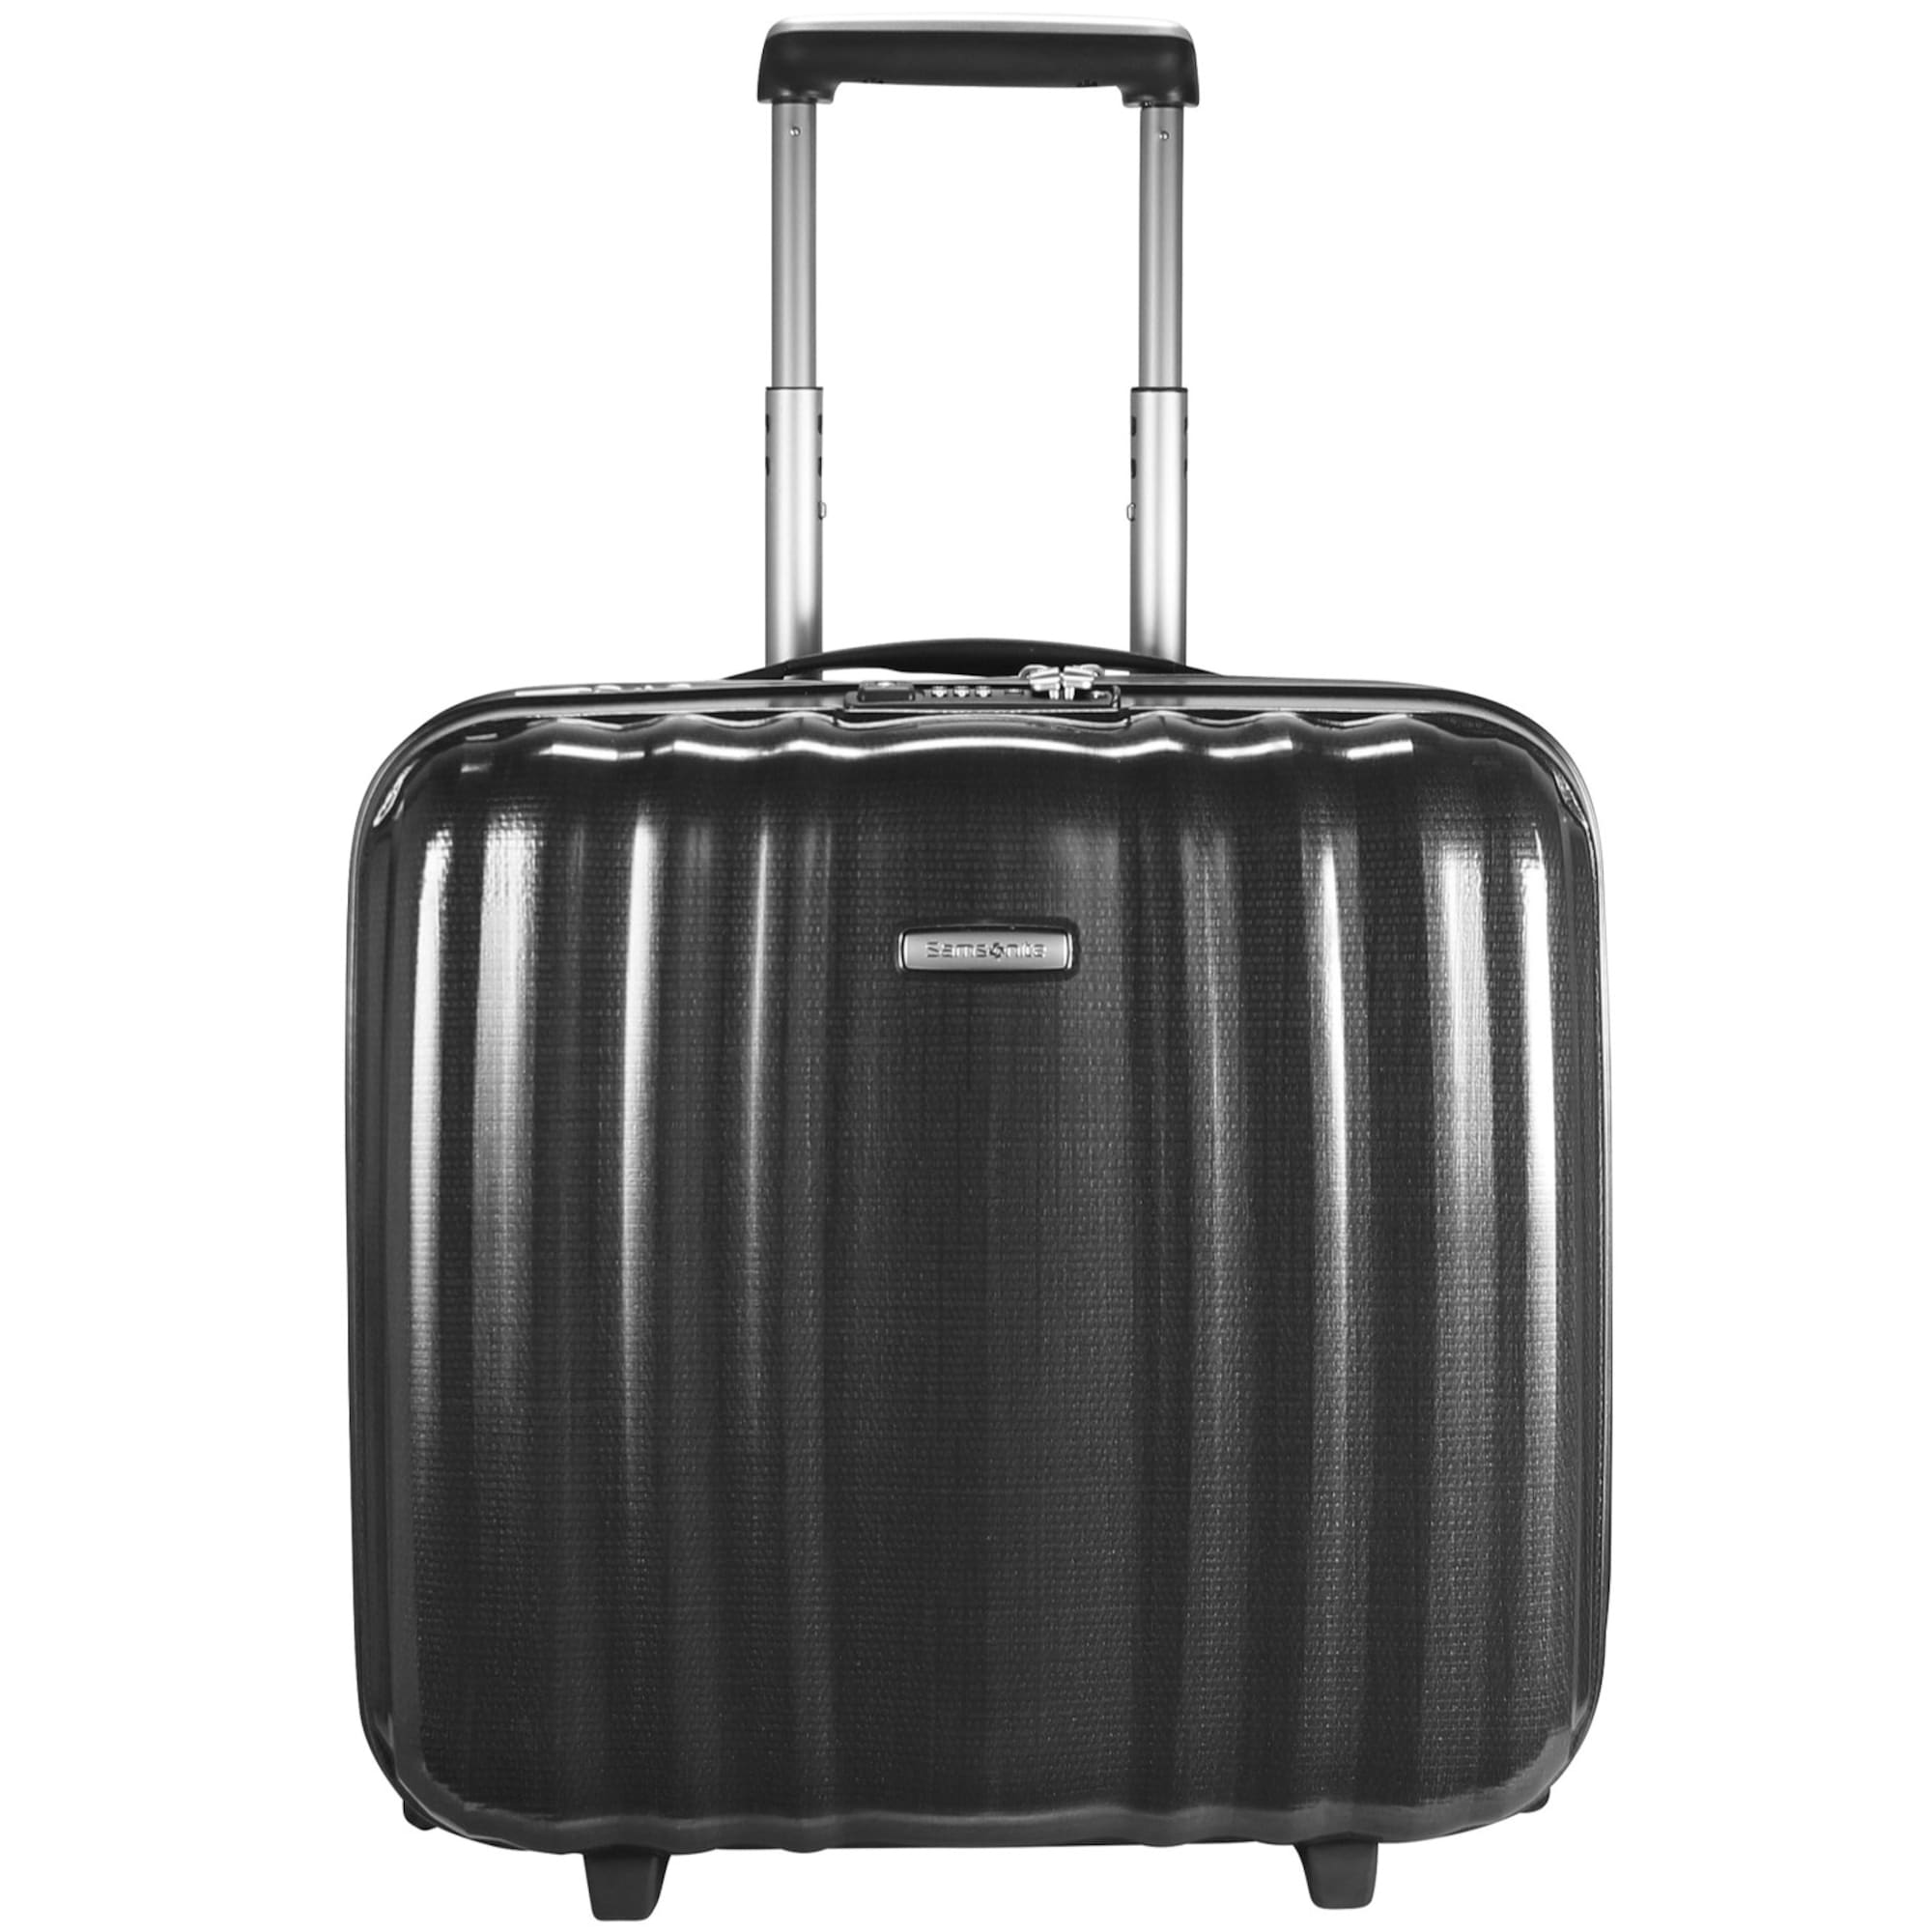 Lite-Cube Upright 2-Rollen Businesstrolley I 43 cm Laptopfach | Taschen > Businesstaschen > Business Trolleys | Grau | Samsonite